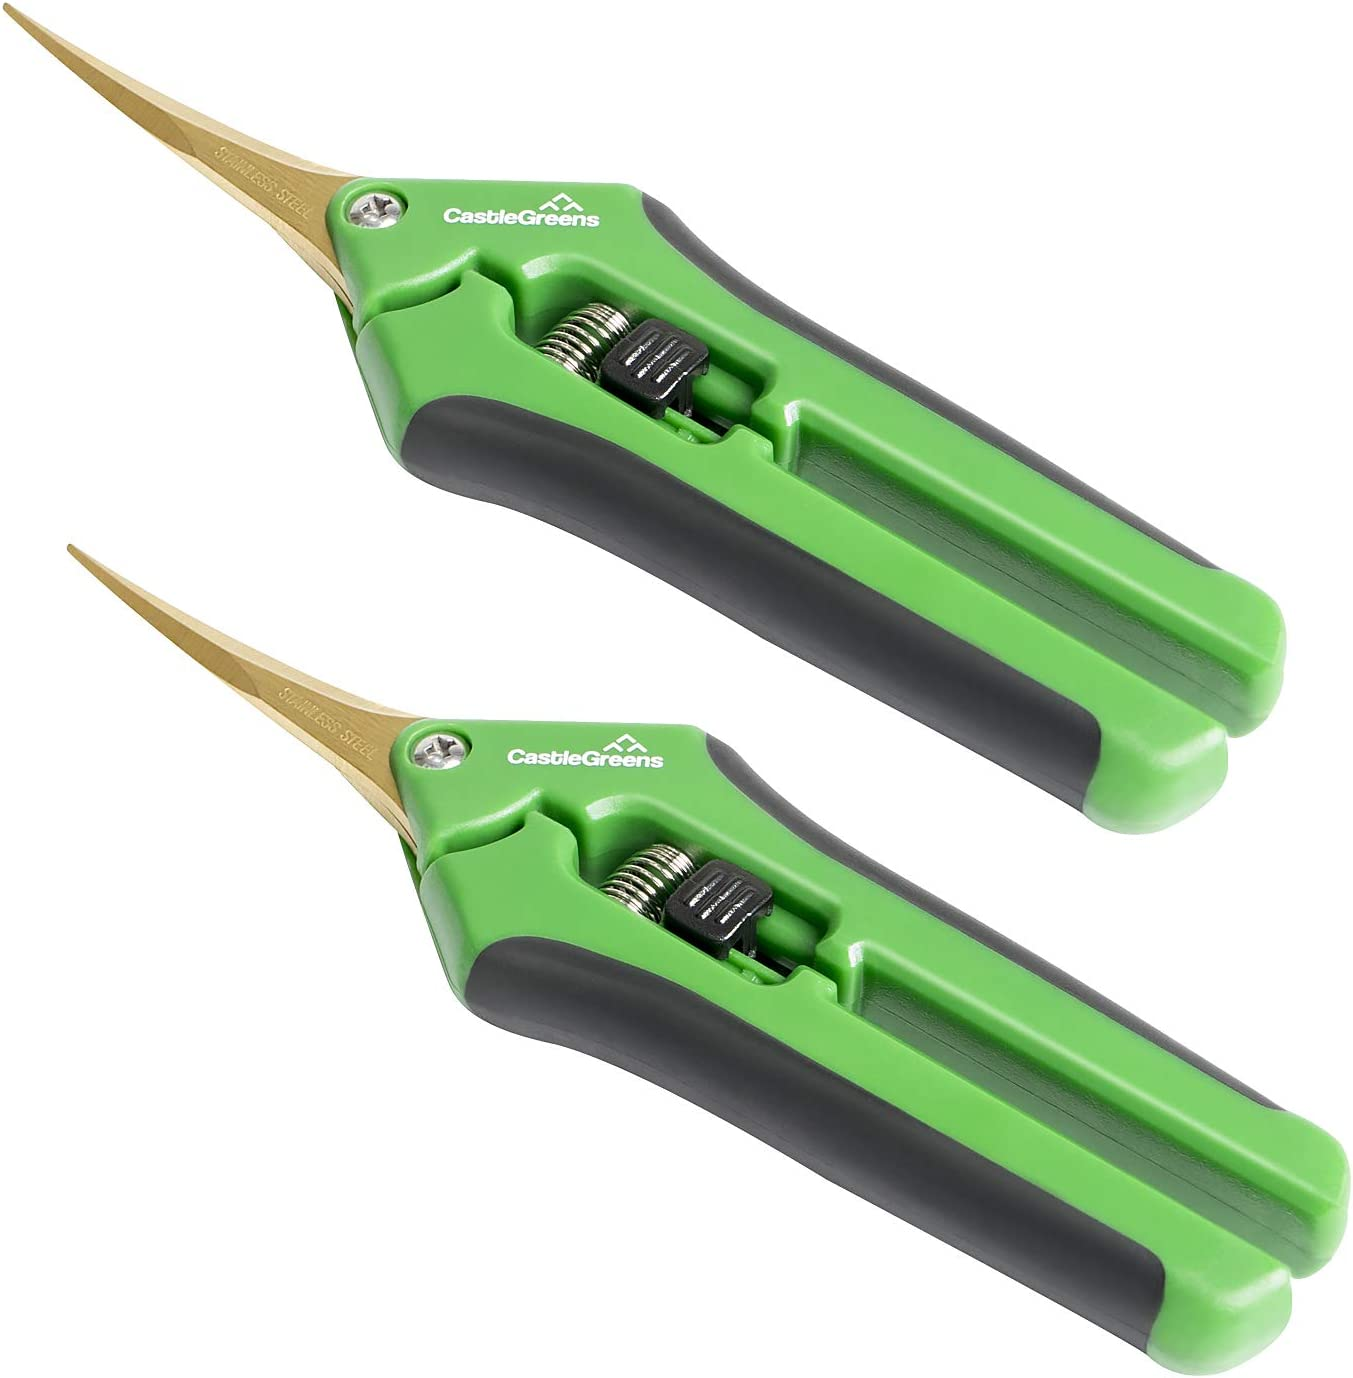 CastleGreens 2-Pack Garden Pruning Shear, 6.5 Inch Curved Blade Heavy-Duty Hand Pruner, Stainless Steel Gardening Bonsai Scissors with Titanium Coated, Green